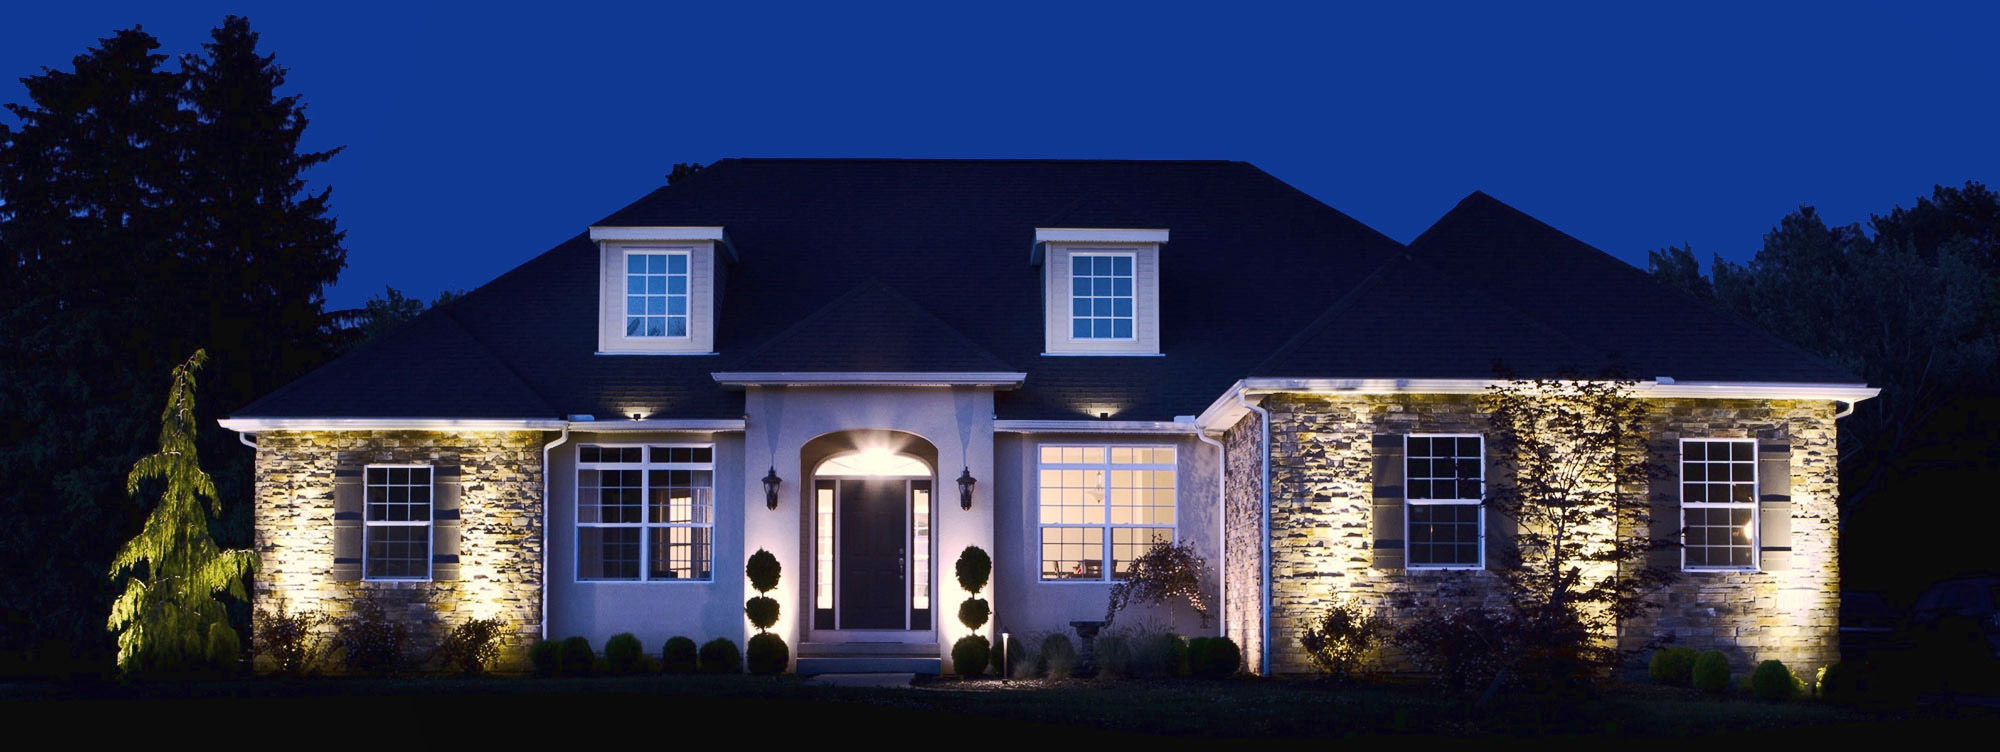 Starry night lighting landscape lighting company in for Beautiful home lighting